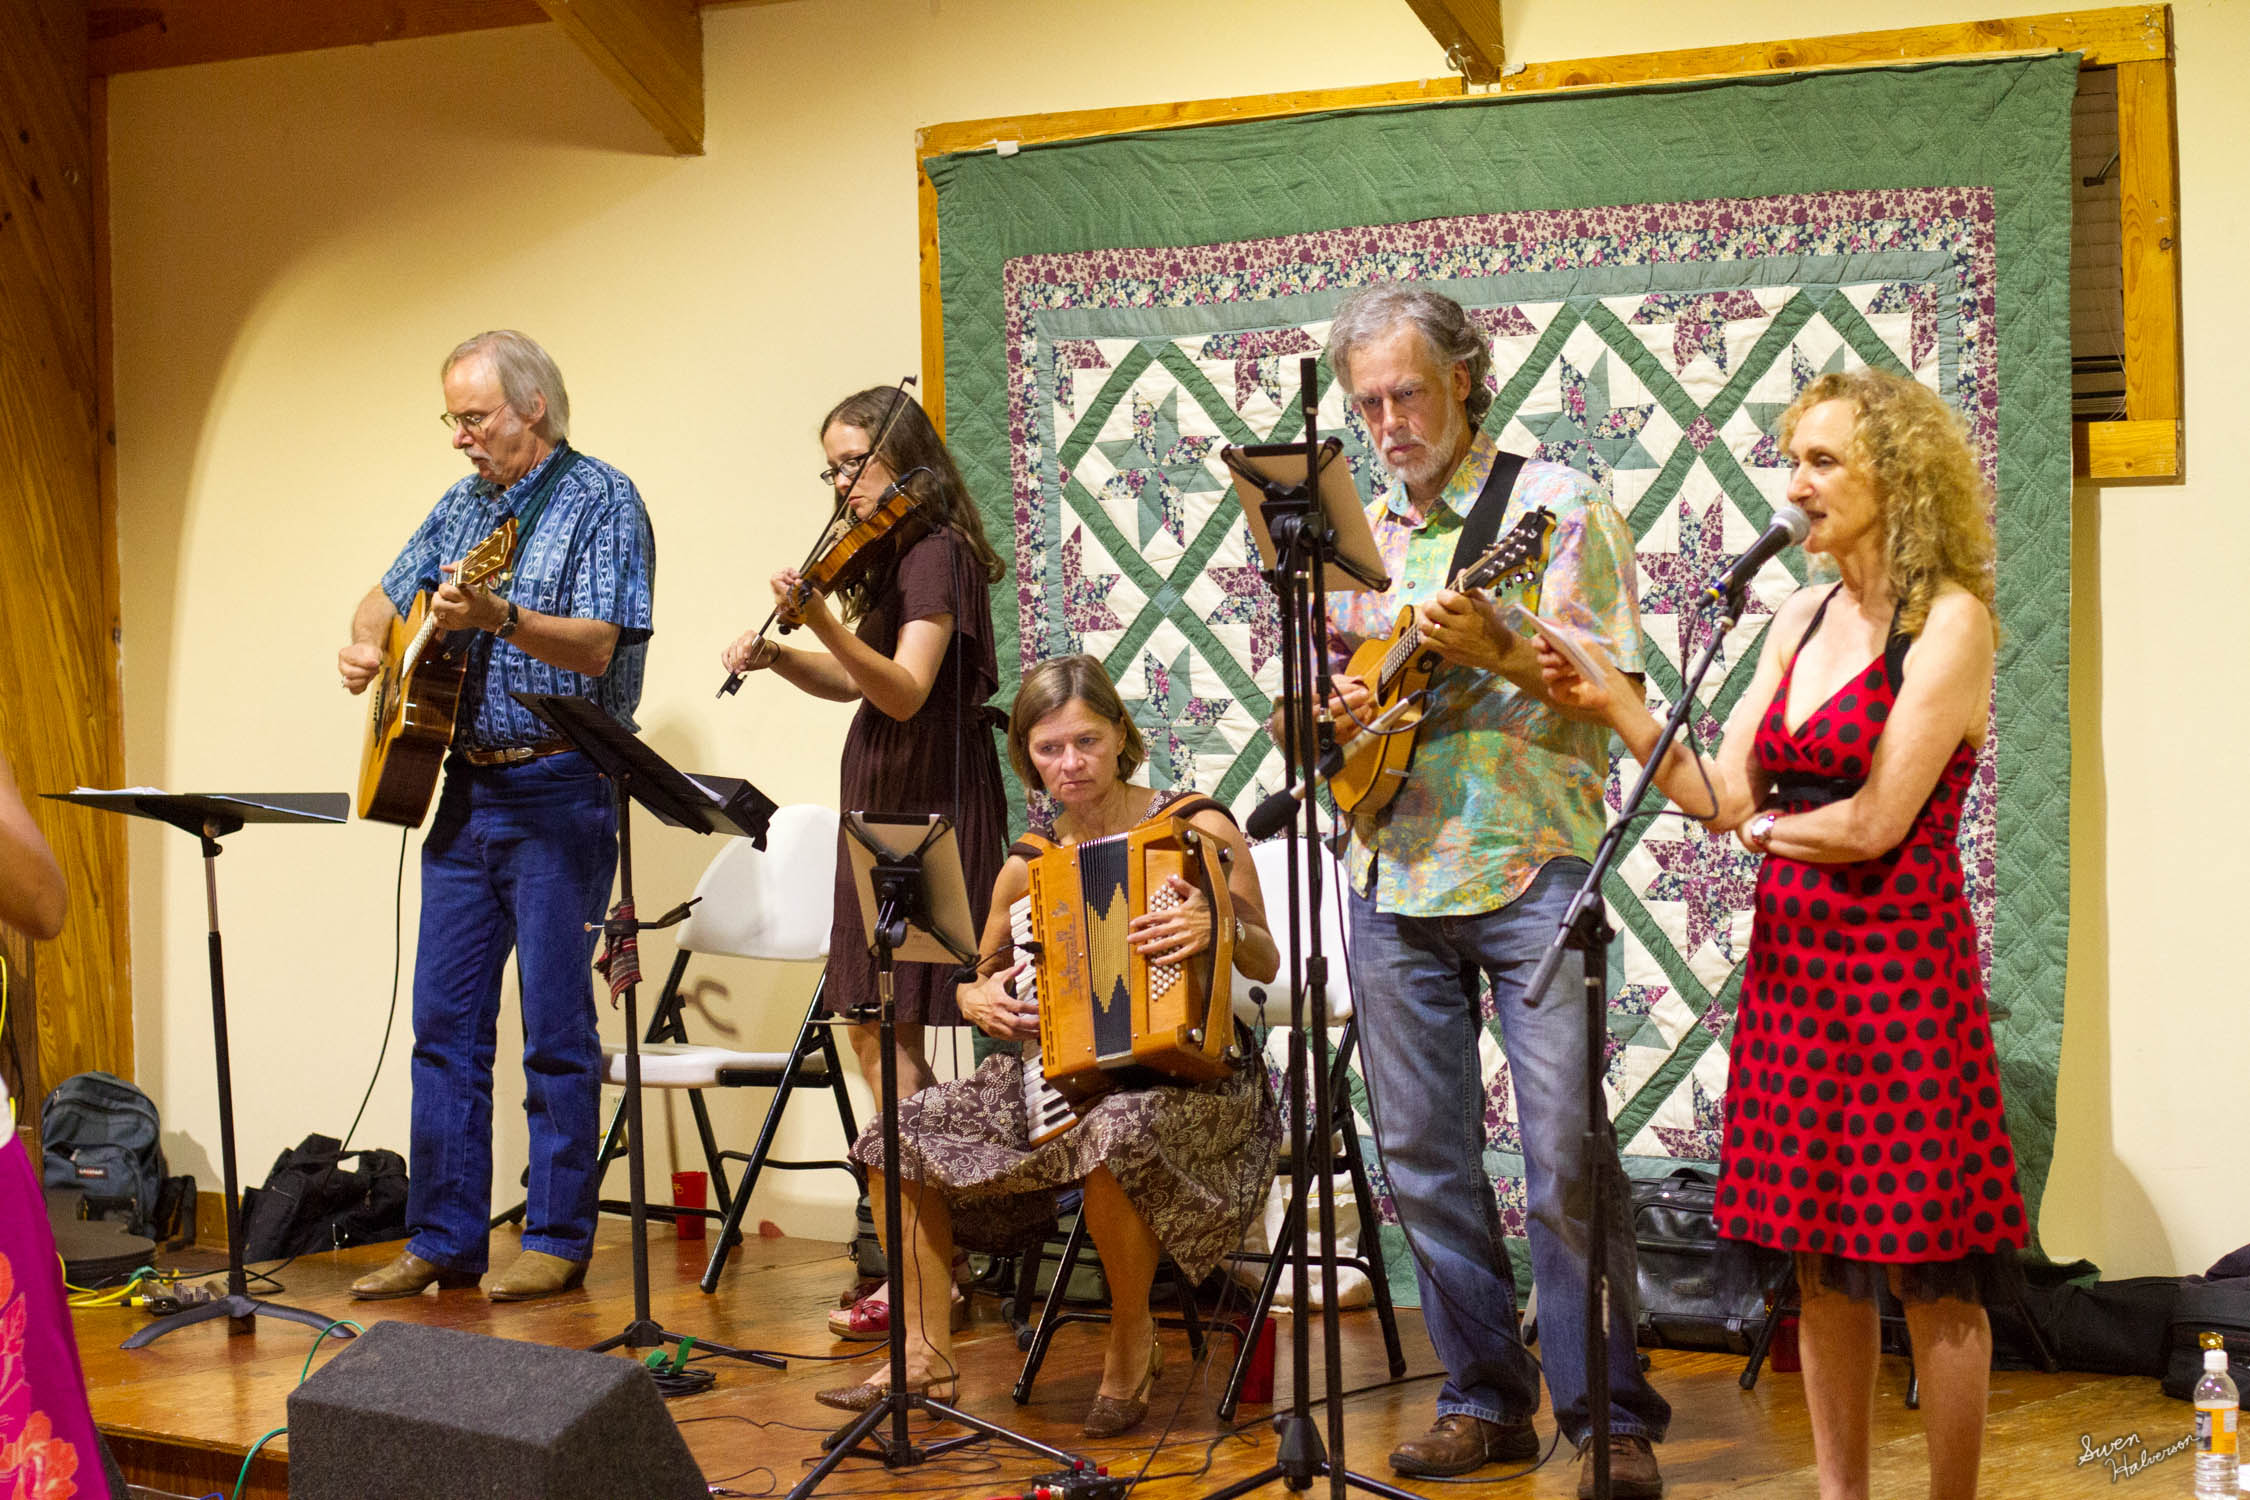 Contra dancing in Berea-021.jpg